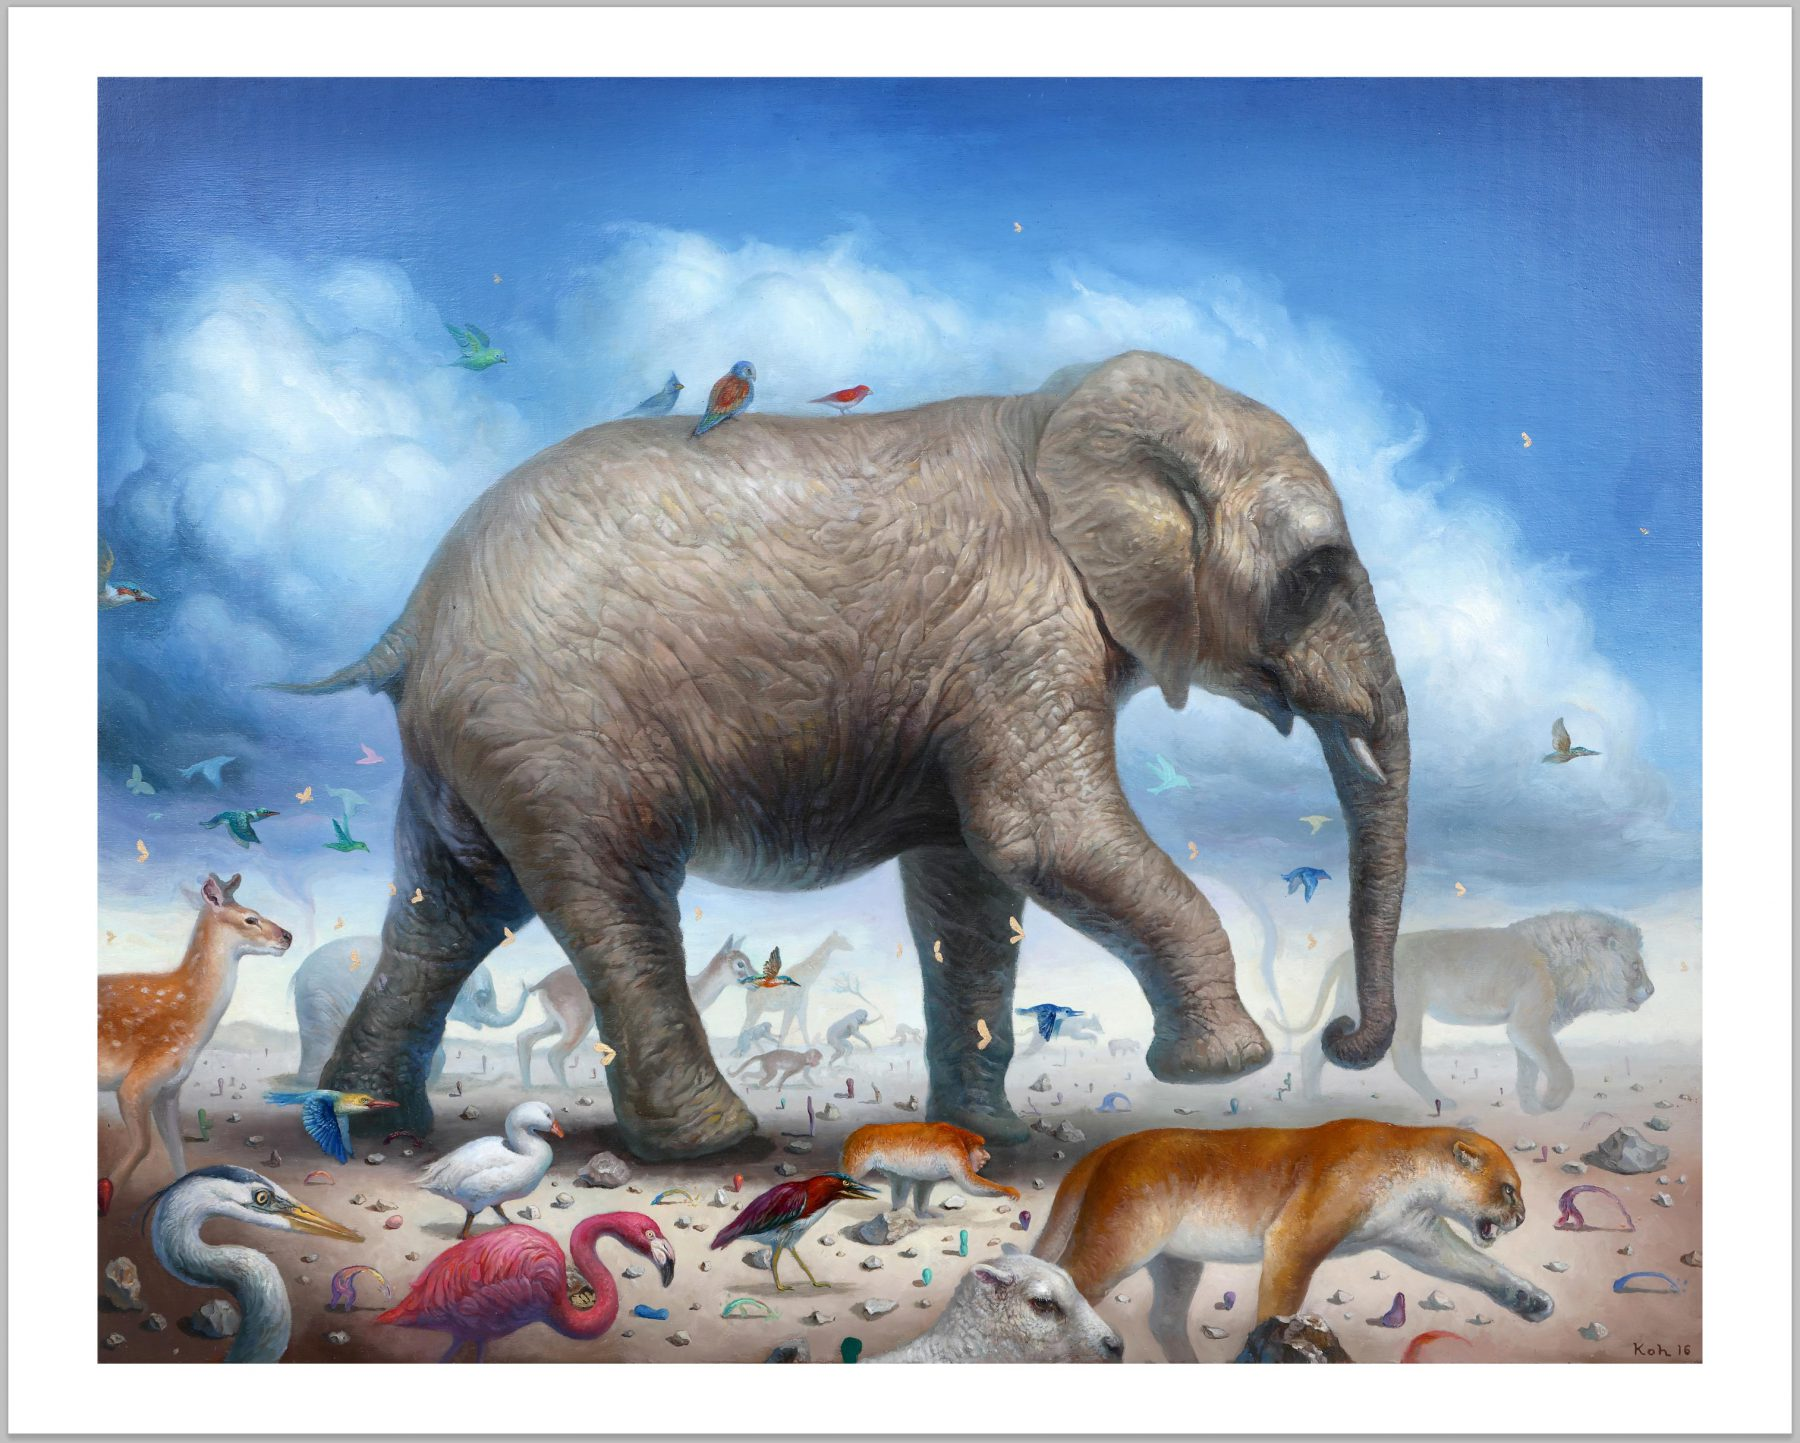 """Way of Life"" by KiSung Koh.  16"" x 20"" Giclee.  Ed of 50 S/N.  $75"